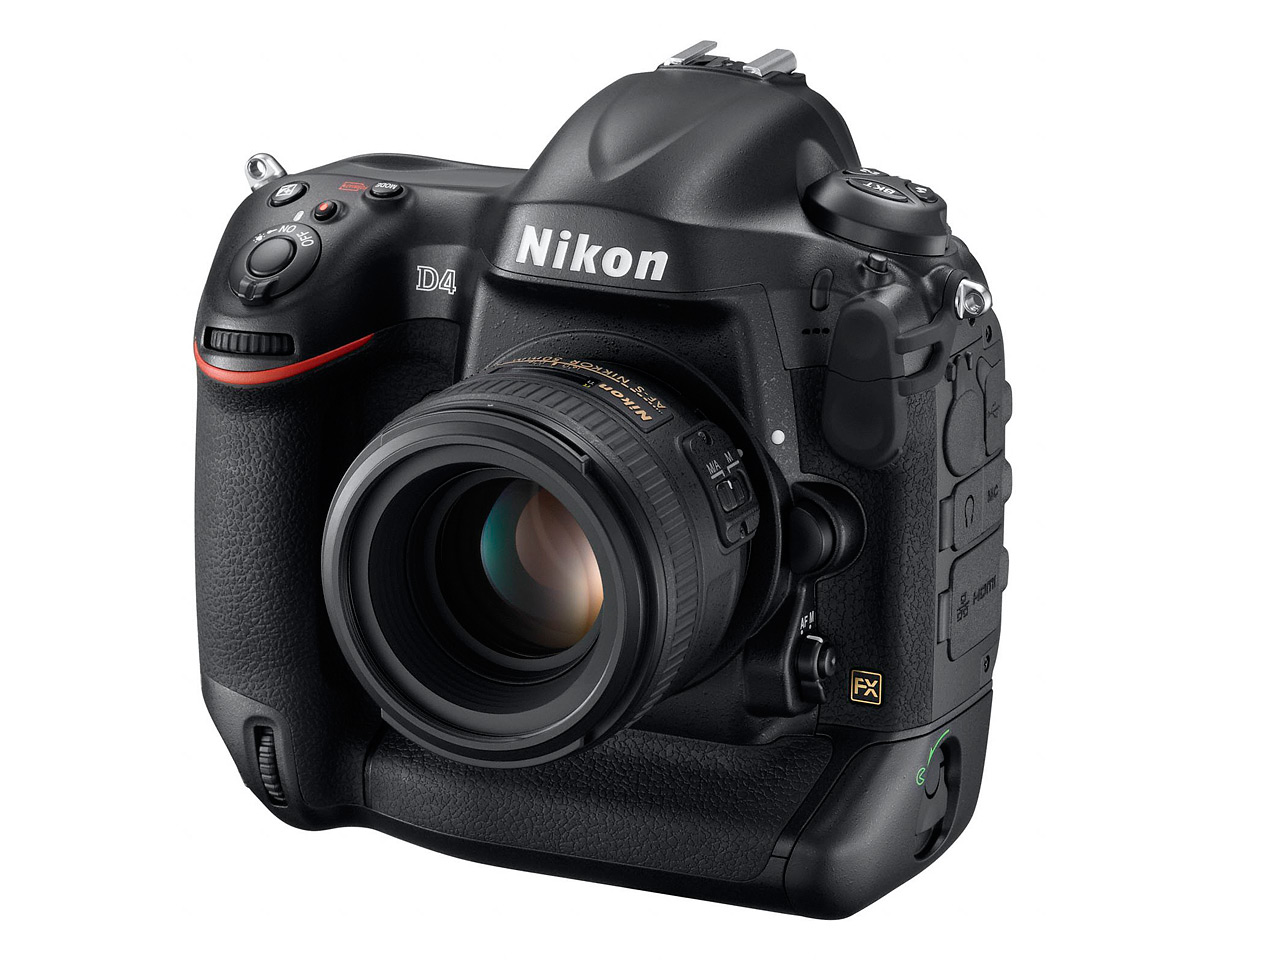 Nikon D4 overview: Digital Photography Review